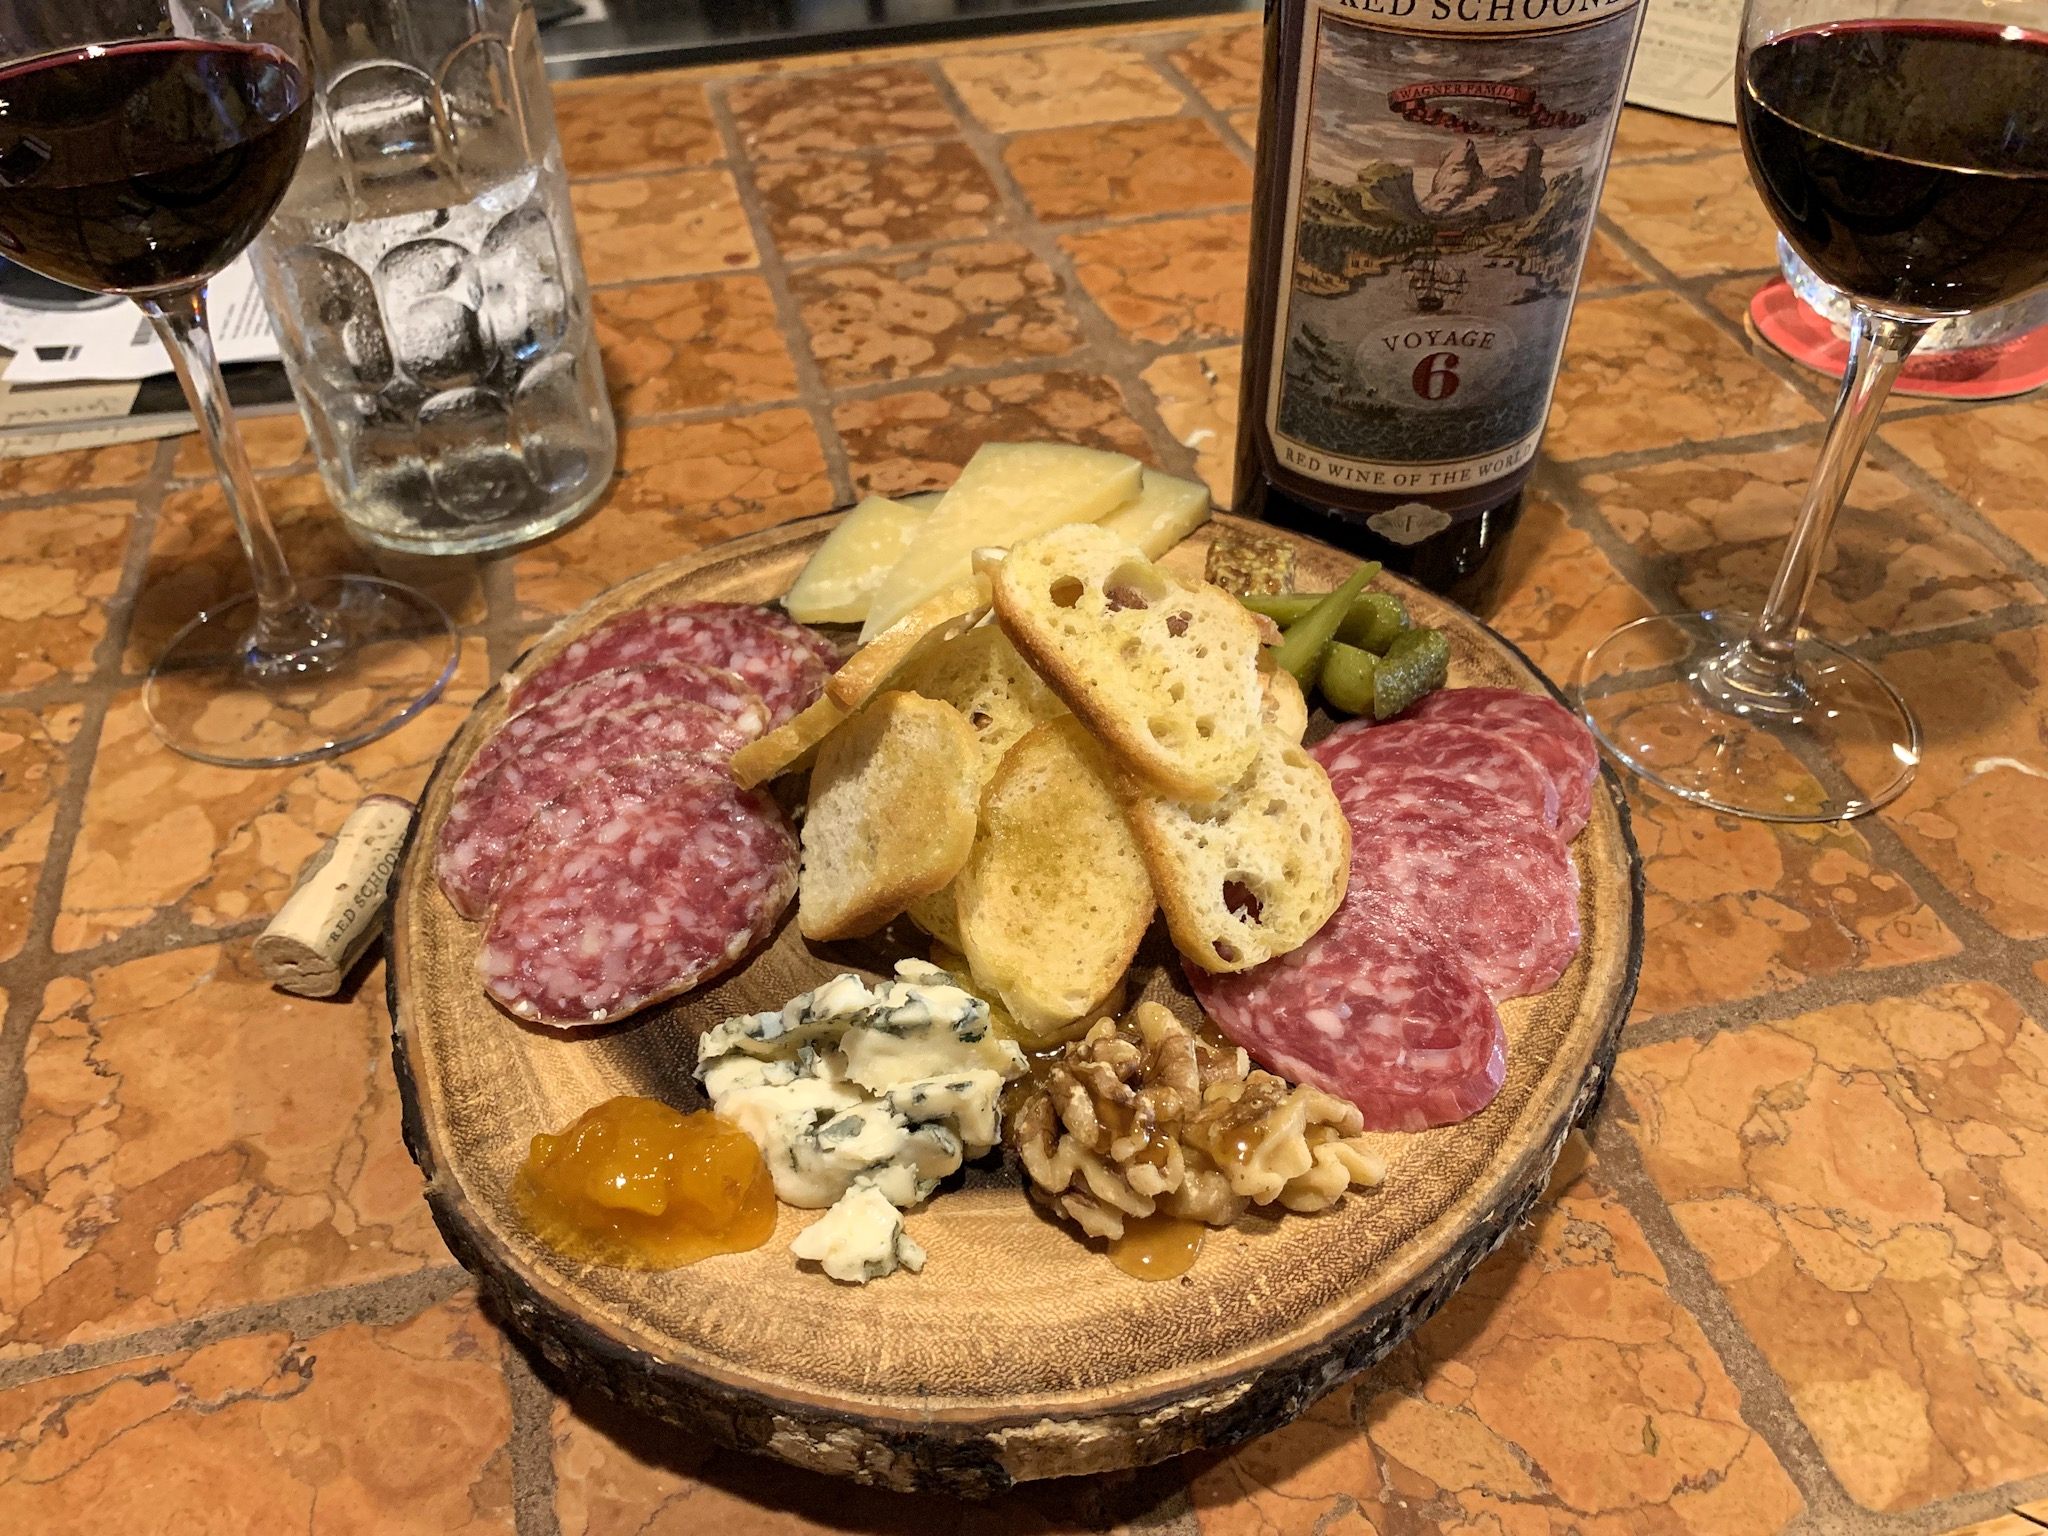 Charcuterie board at Sola Bistro with Red Schooner